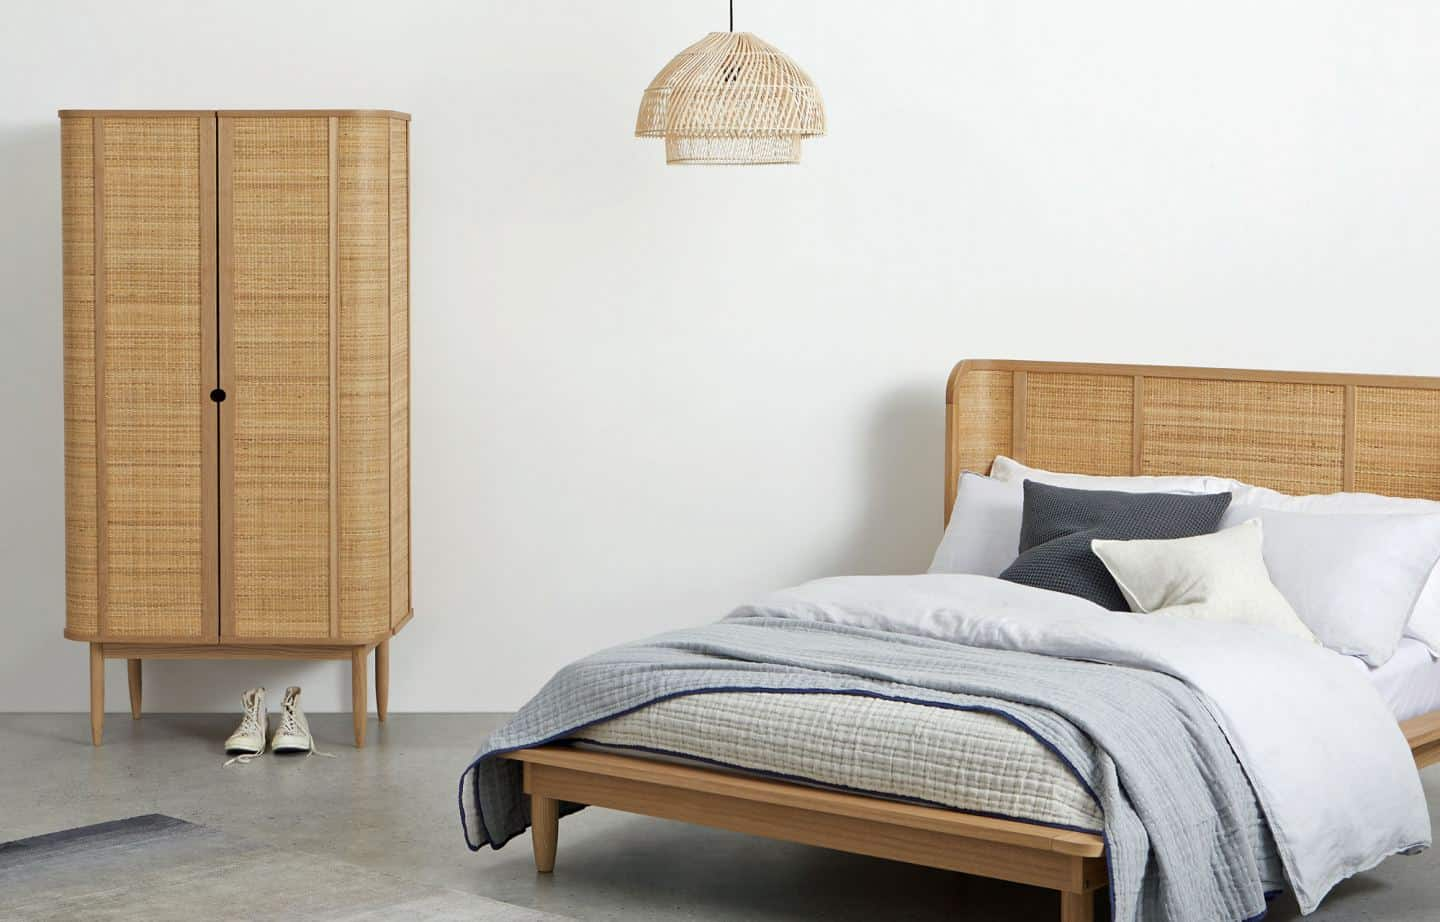 Rattan Interiors - The Liana Wardrobe Natural Cane And Ash from Made.com